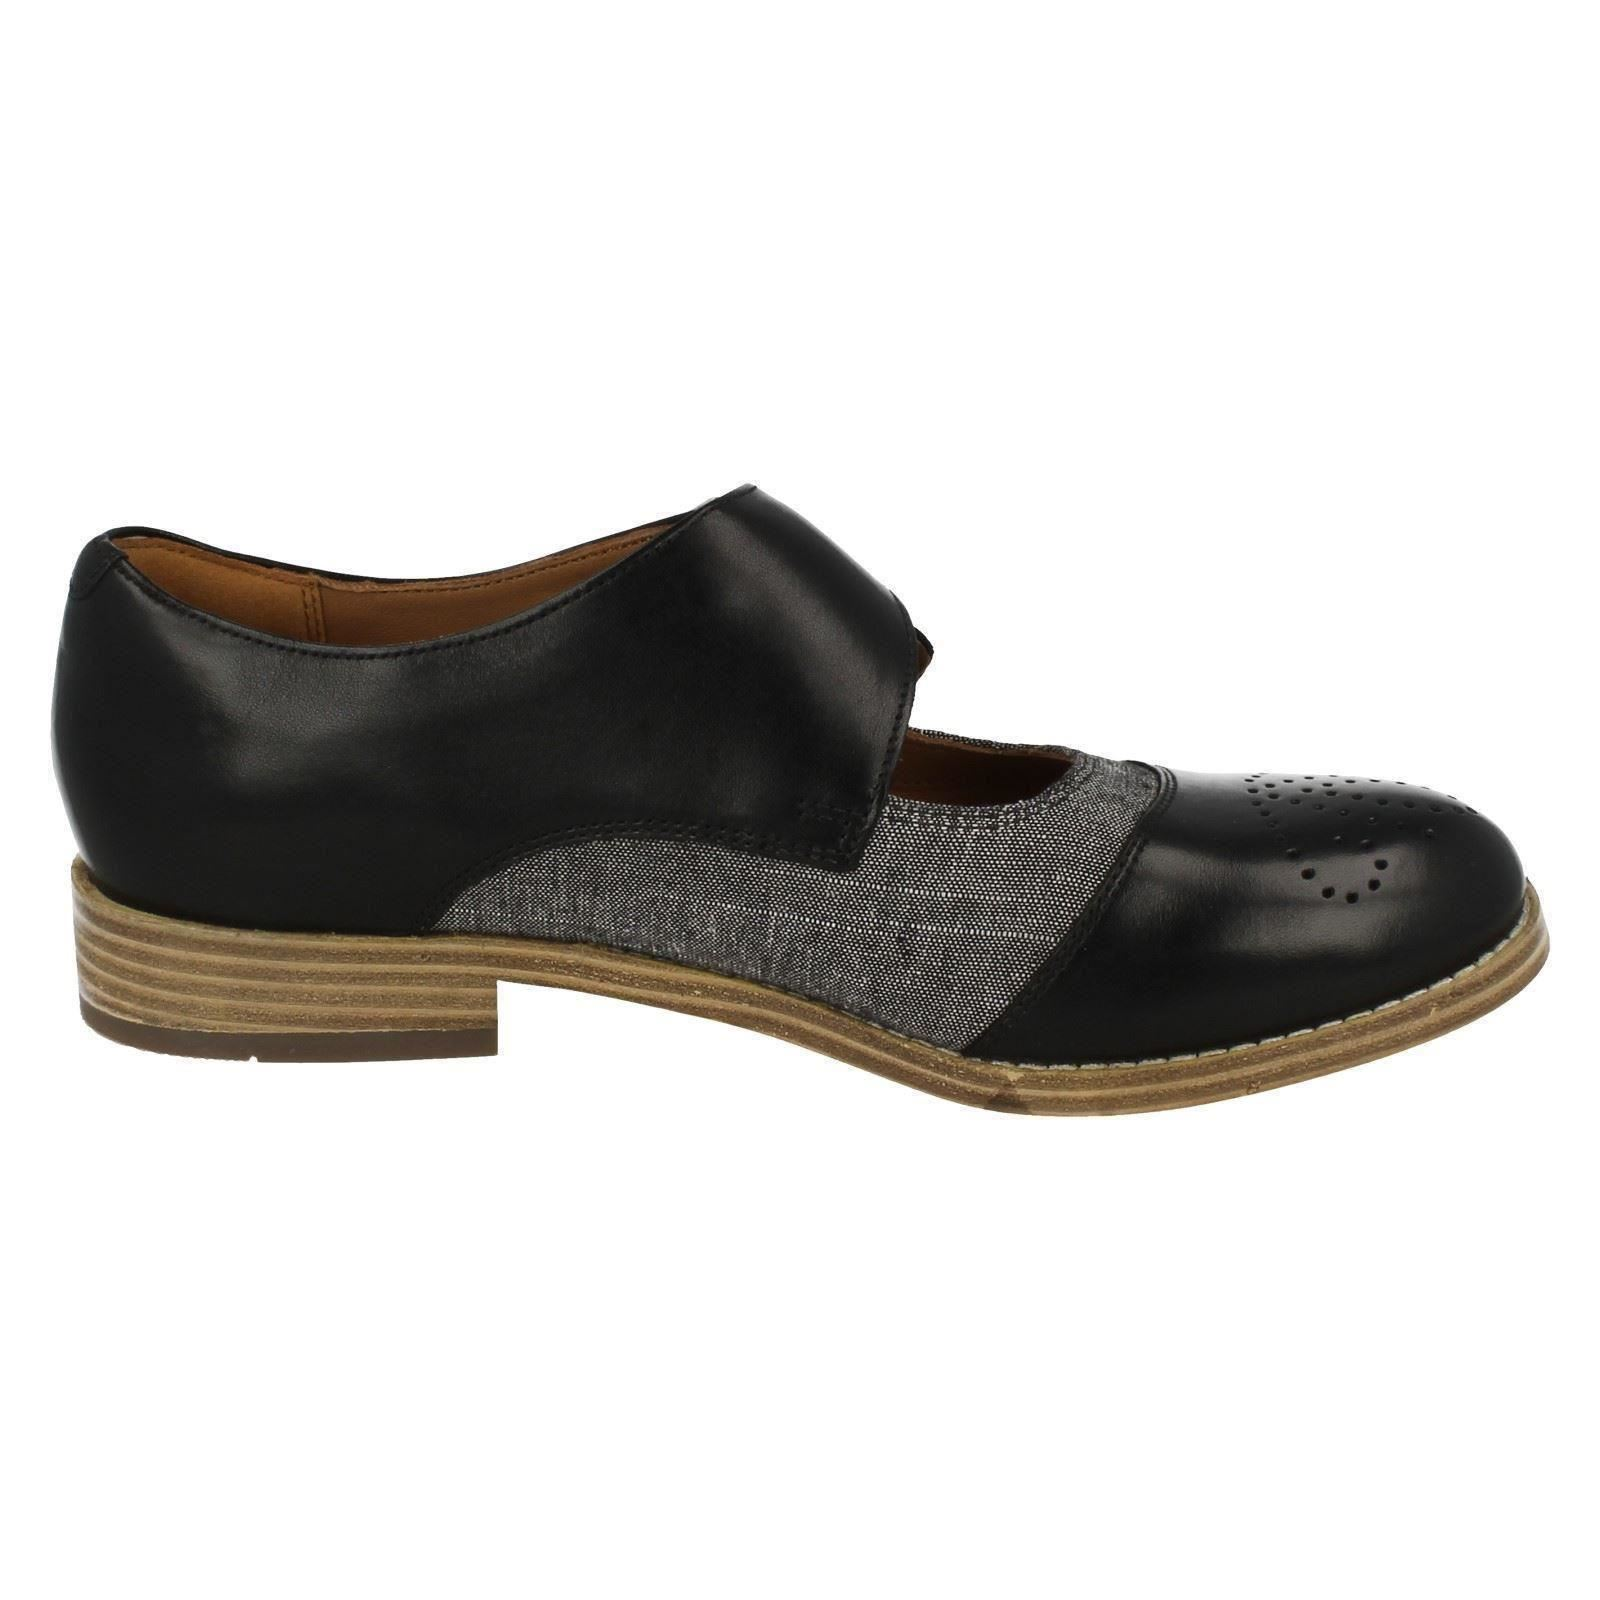 Ladies-Clarks-Smart-Casual-Monk-Style-Shoes-Zyris-